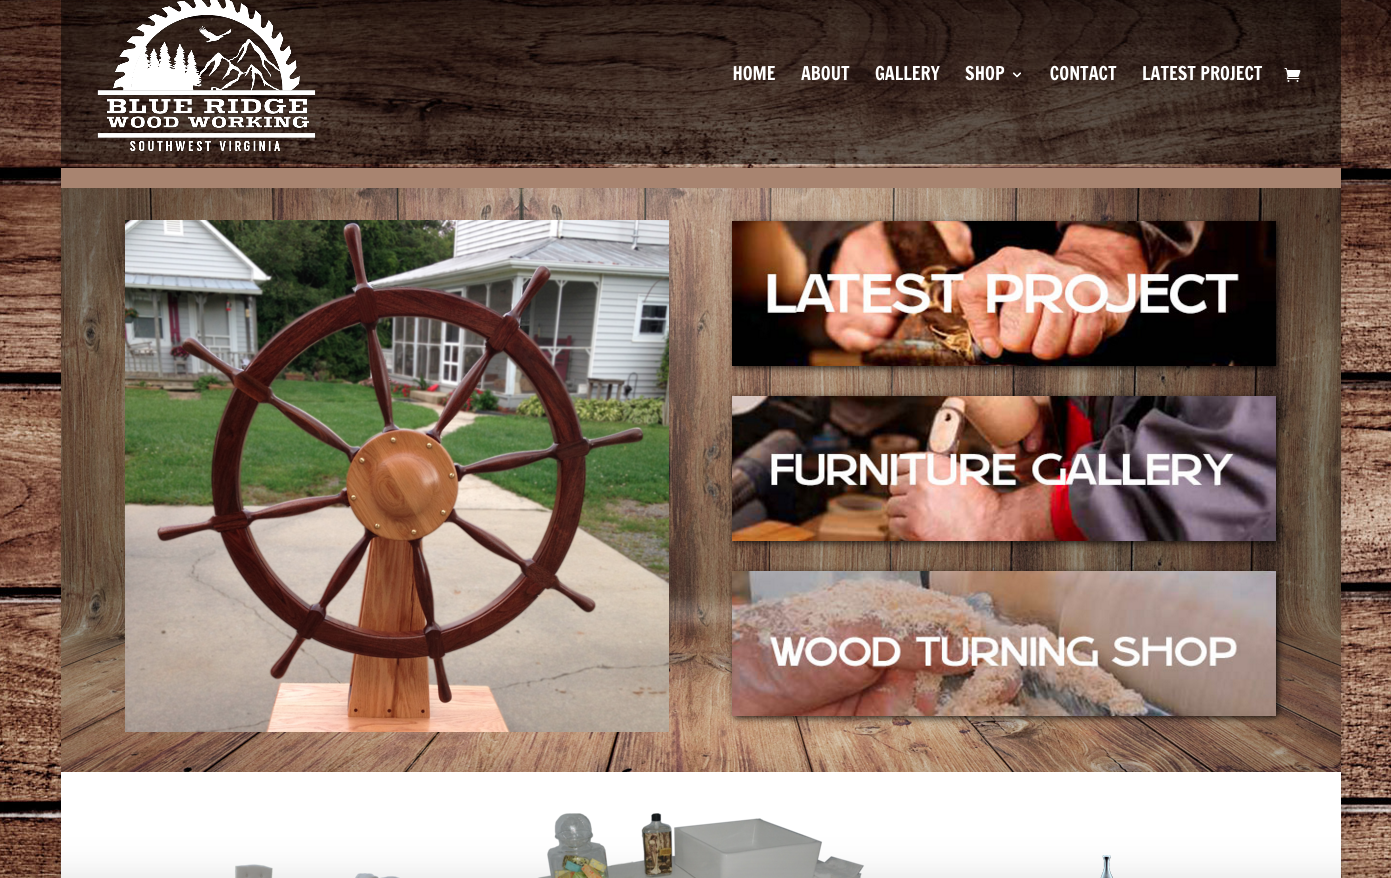 Blue Ridge Woodworking